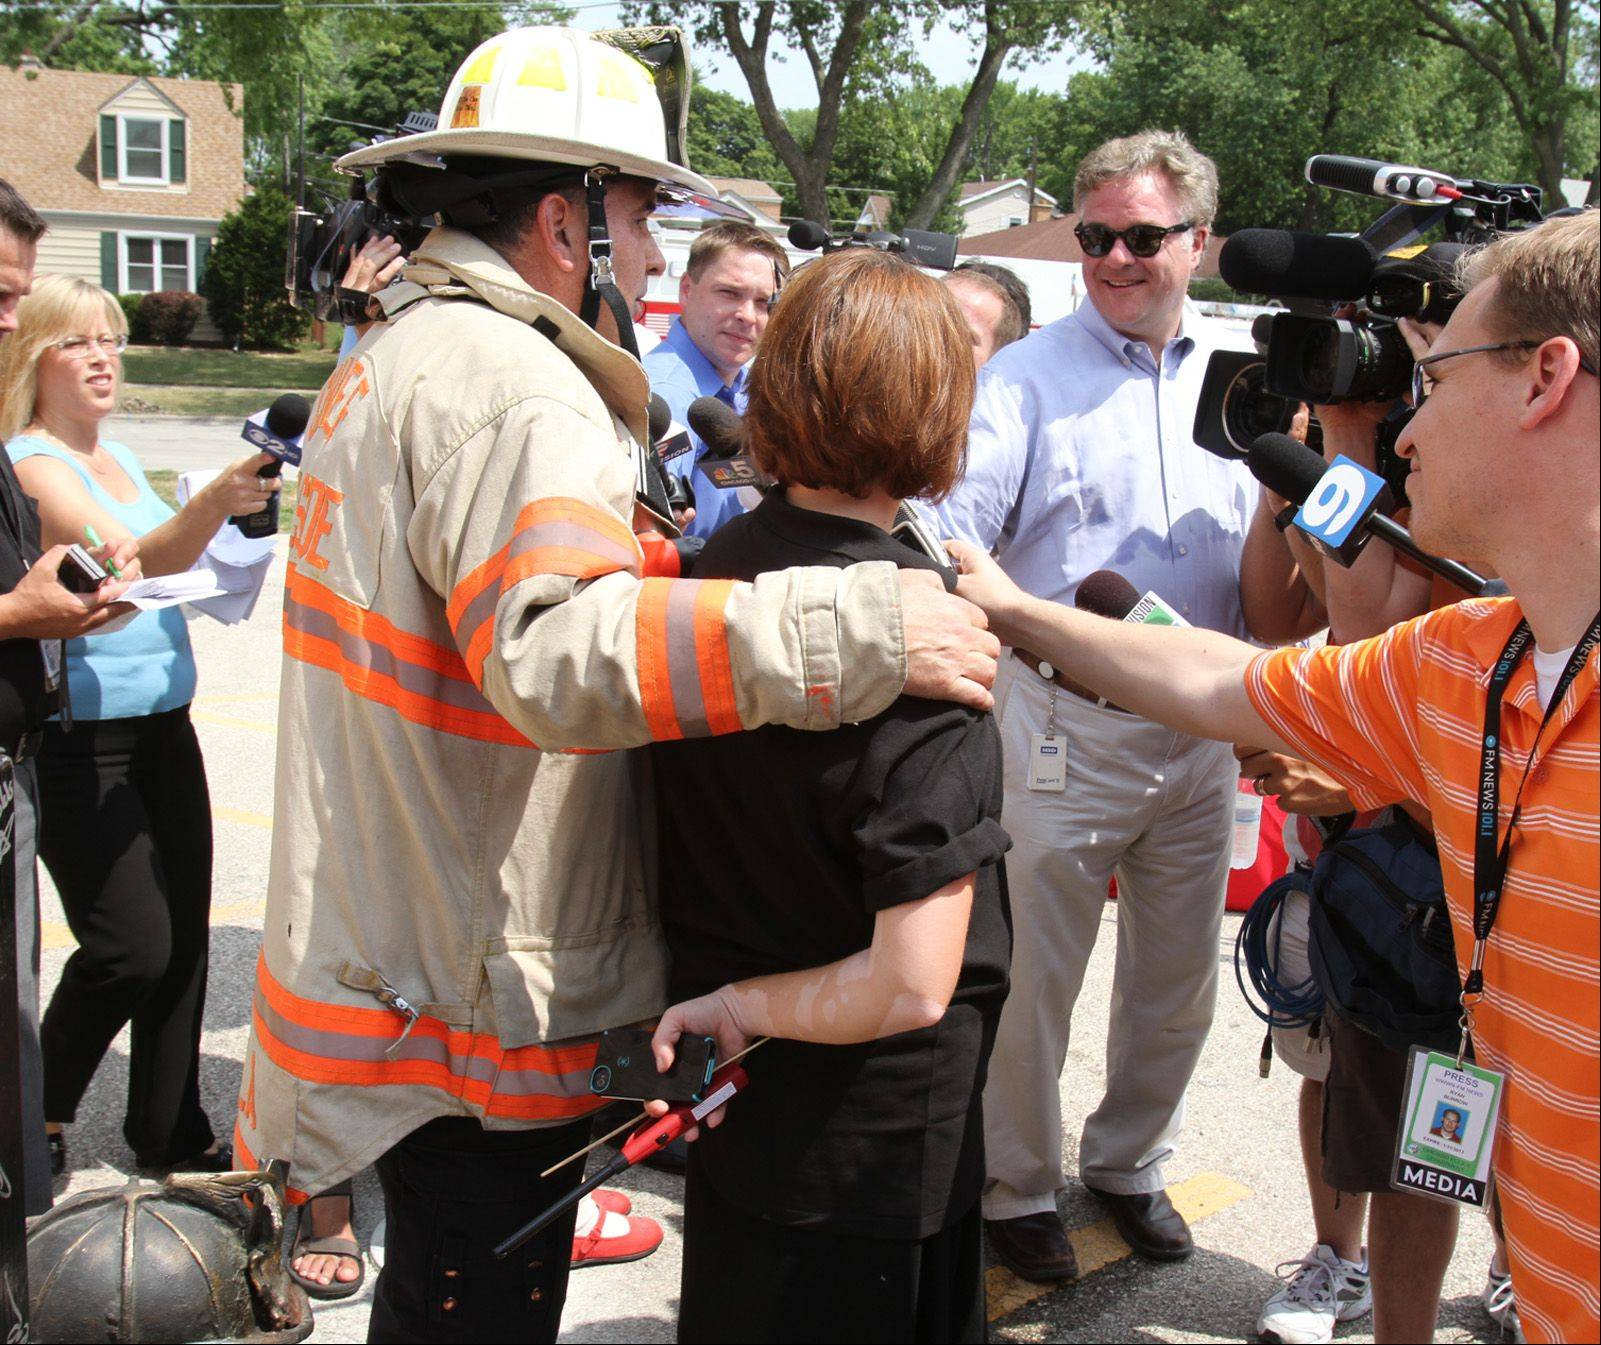 Michael Kuryla, president of Cook County Fire Chiefs Association consoles Laura Barros, assistant executive director at the Illinois Fire Safety Alliance in Mount Prospect, as she answers reporters' questions after being burned during a fireworks safety demonstration.